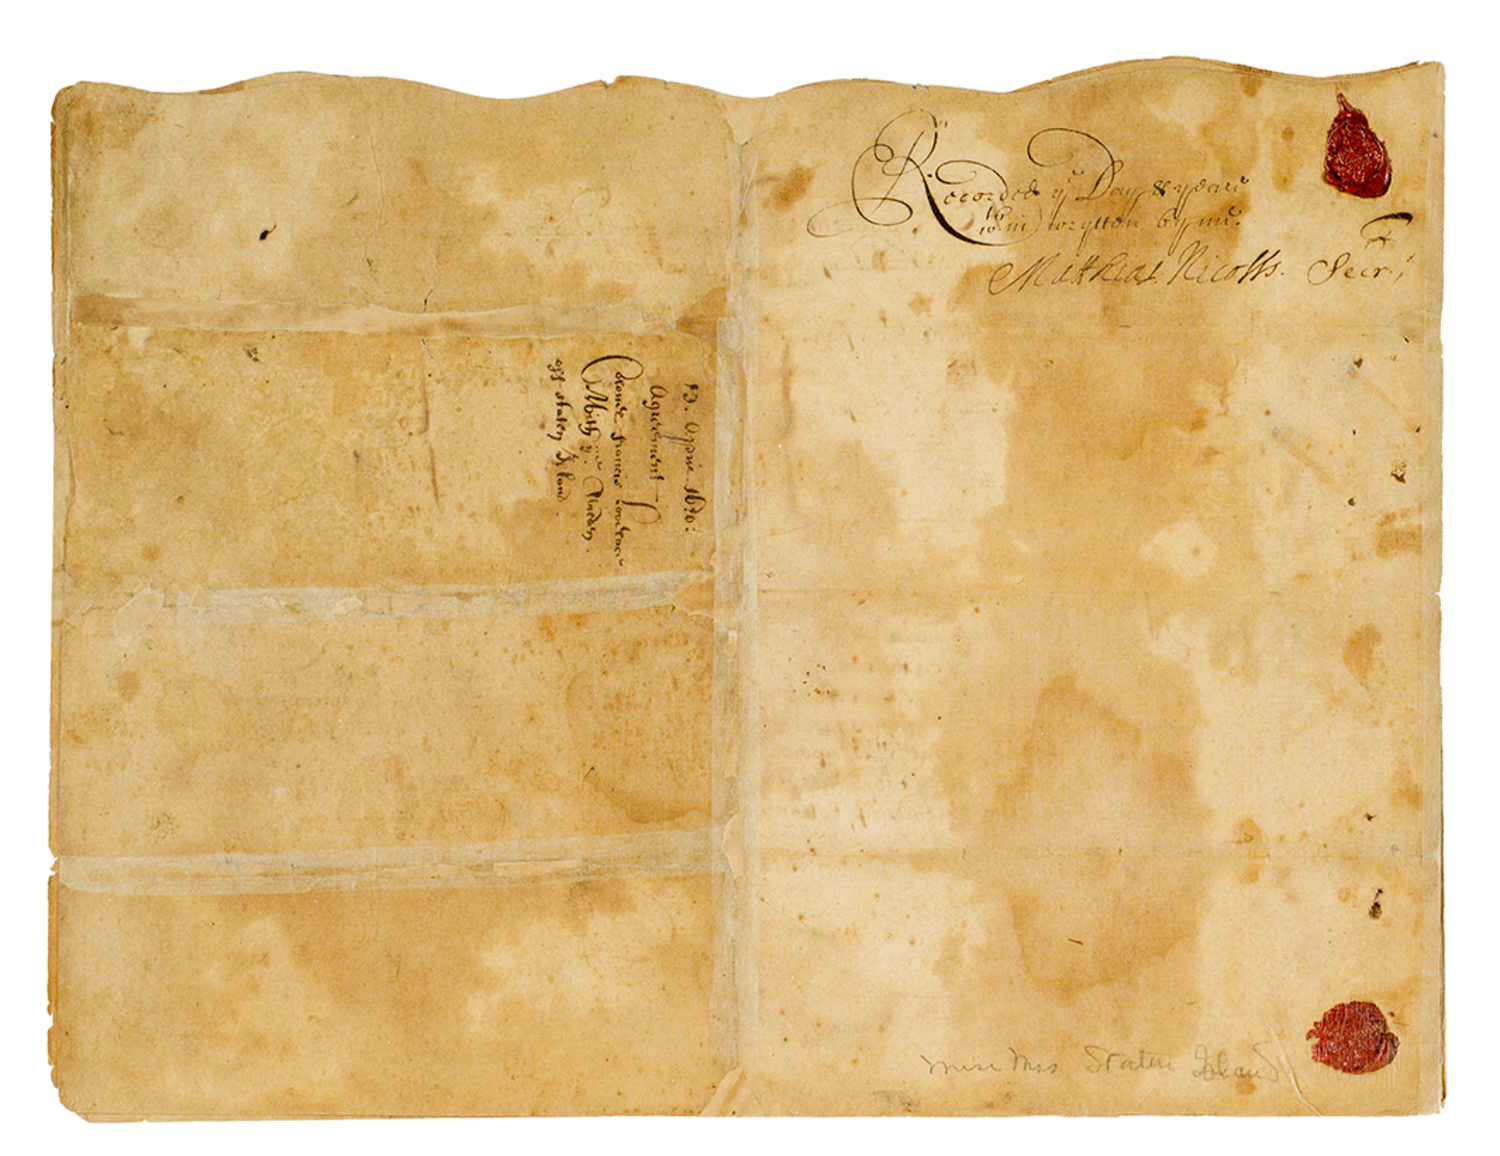 Deed for the purchase of Staten Island from the Munsees on behalf of the Duke of York. Manuscript signed by Gov. Francis Lovelace, on April 13, 1670.